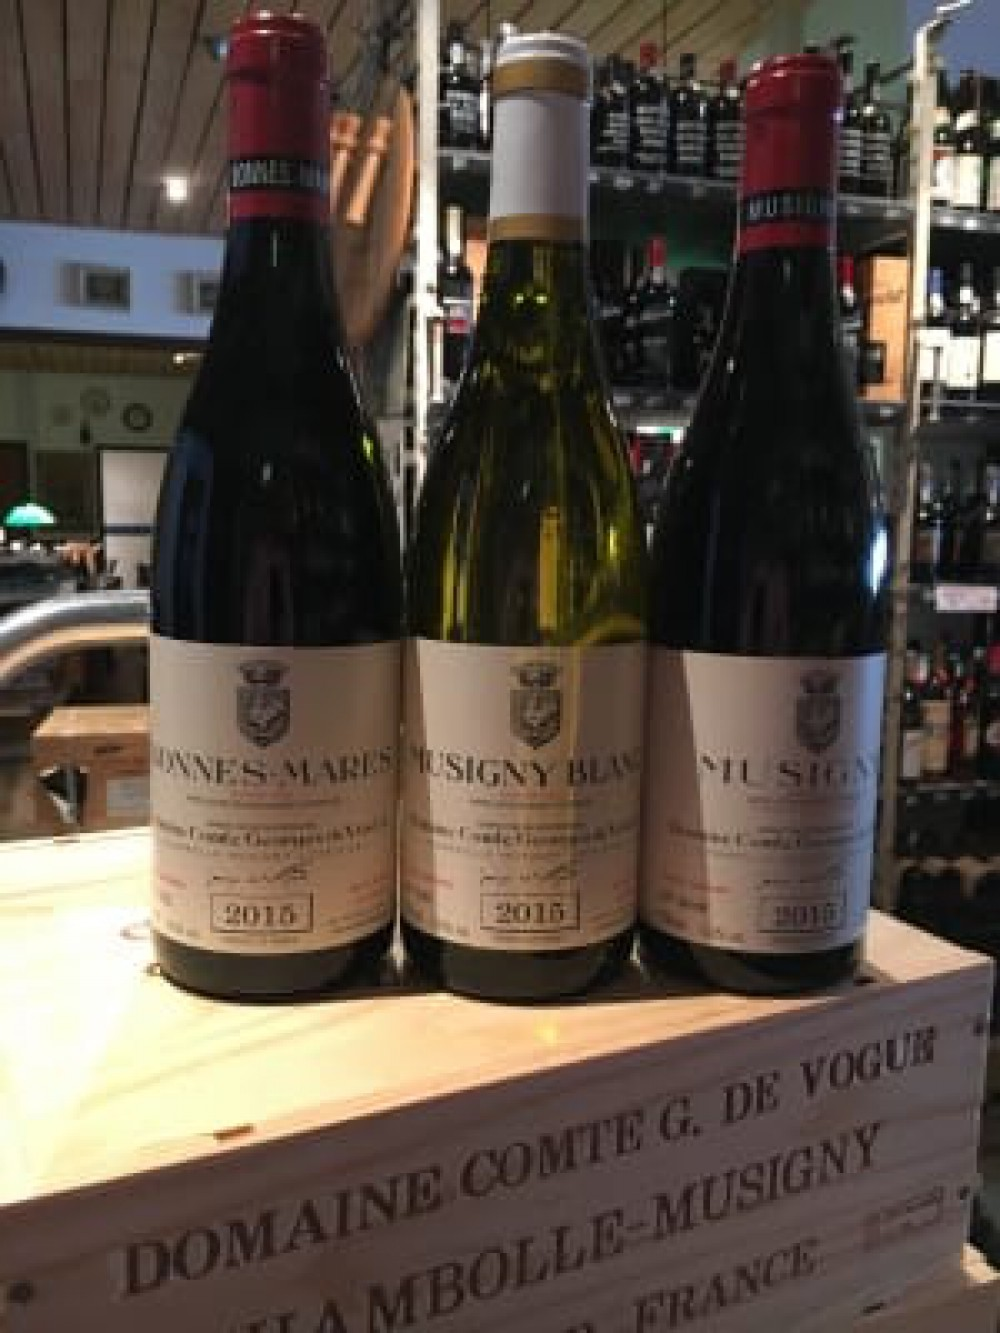 Just arrived, Comte de Vogue 2015!